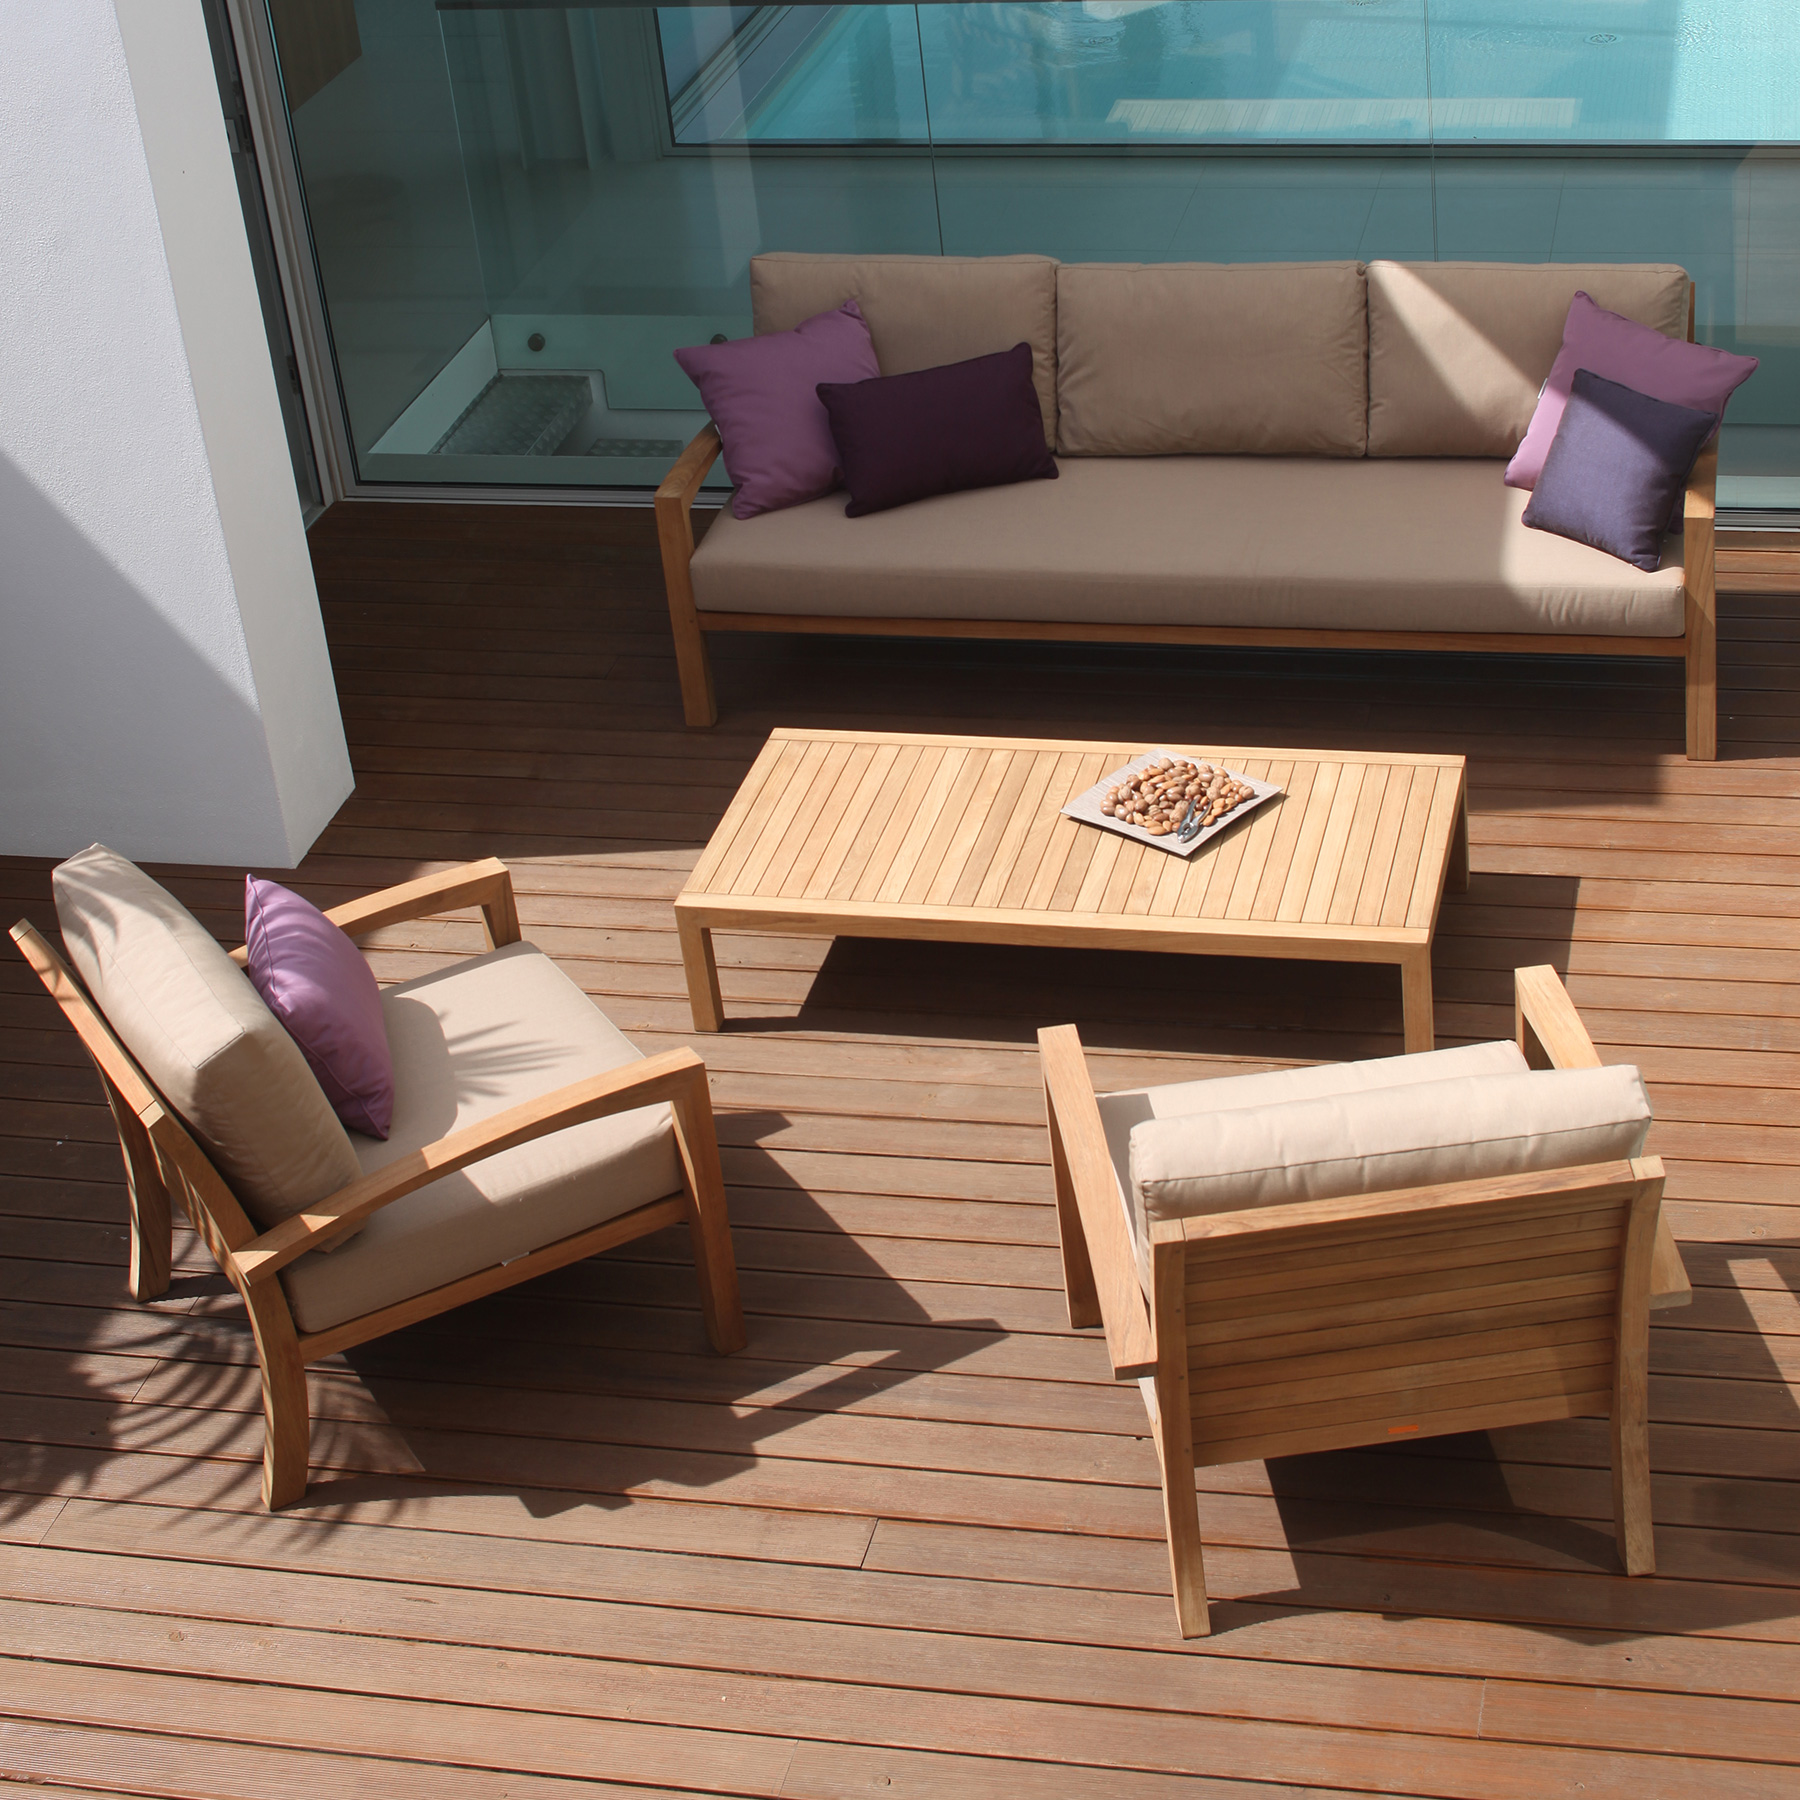 High end ixit lounge chair designer luxury outdoor for High end outdoor furniture